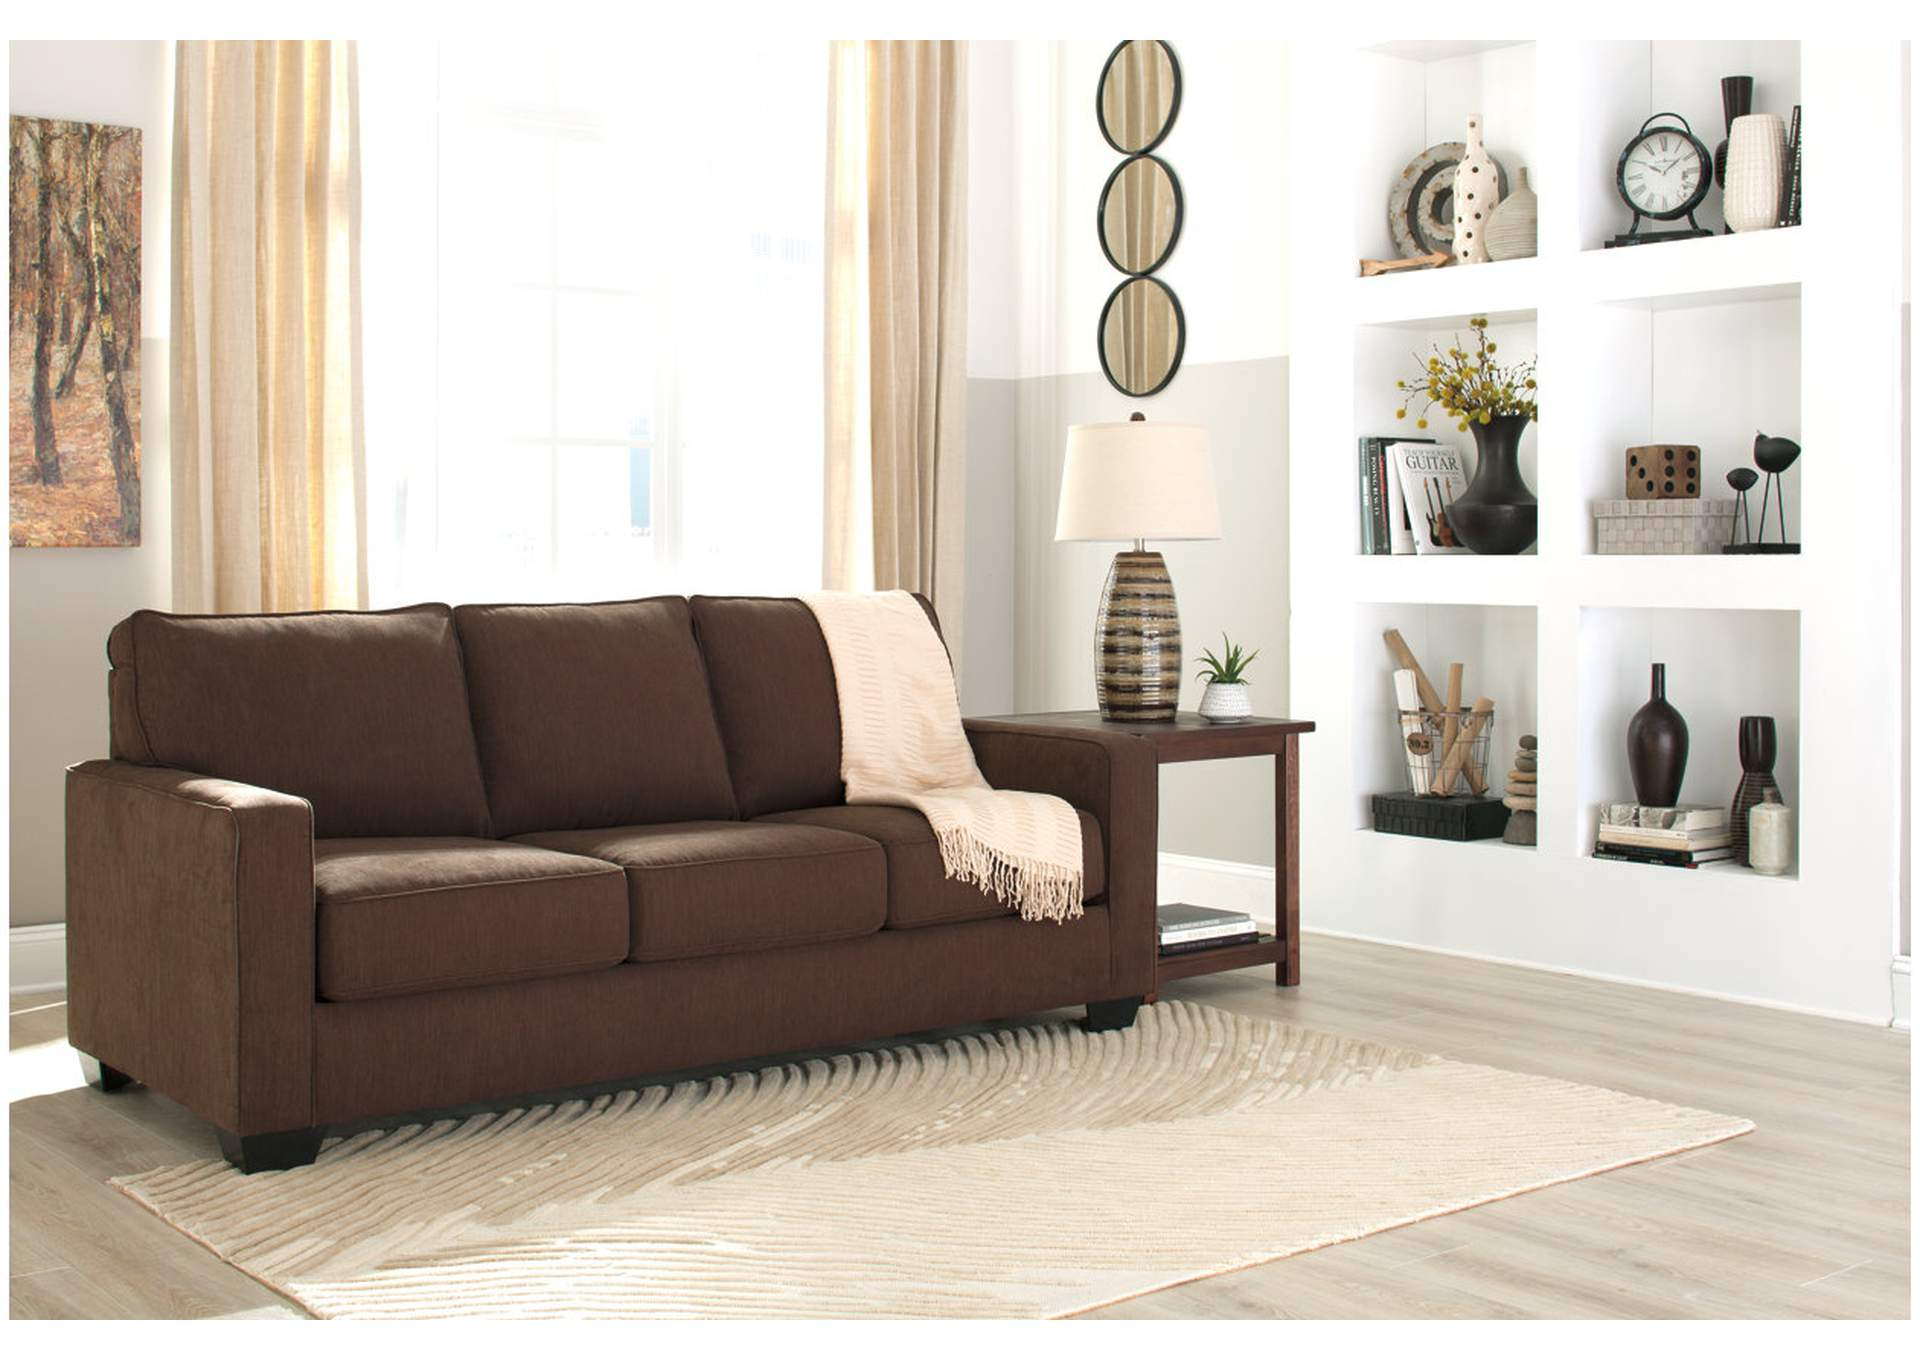 Zeb Espresso Queen Sofa Sleeper,Signature Design By Ashley